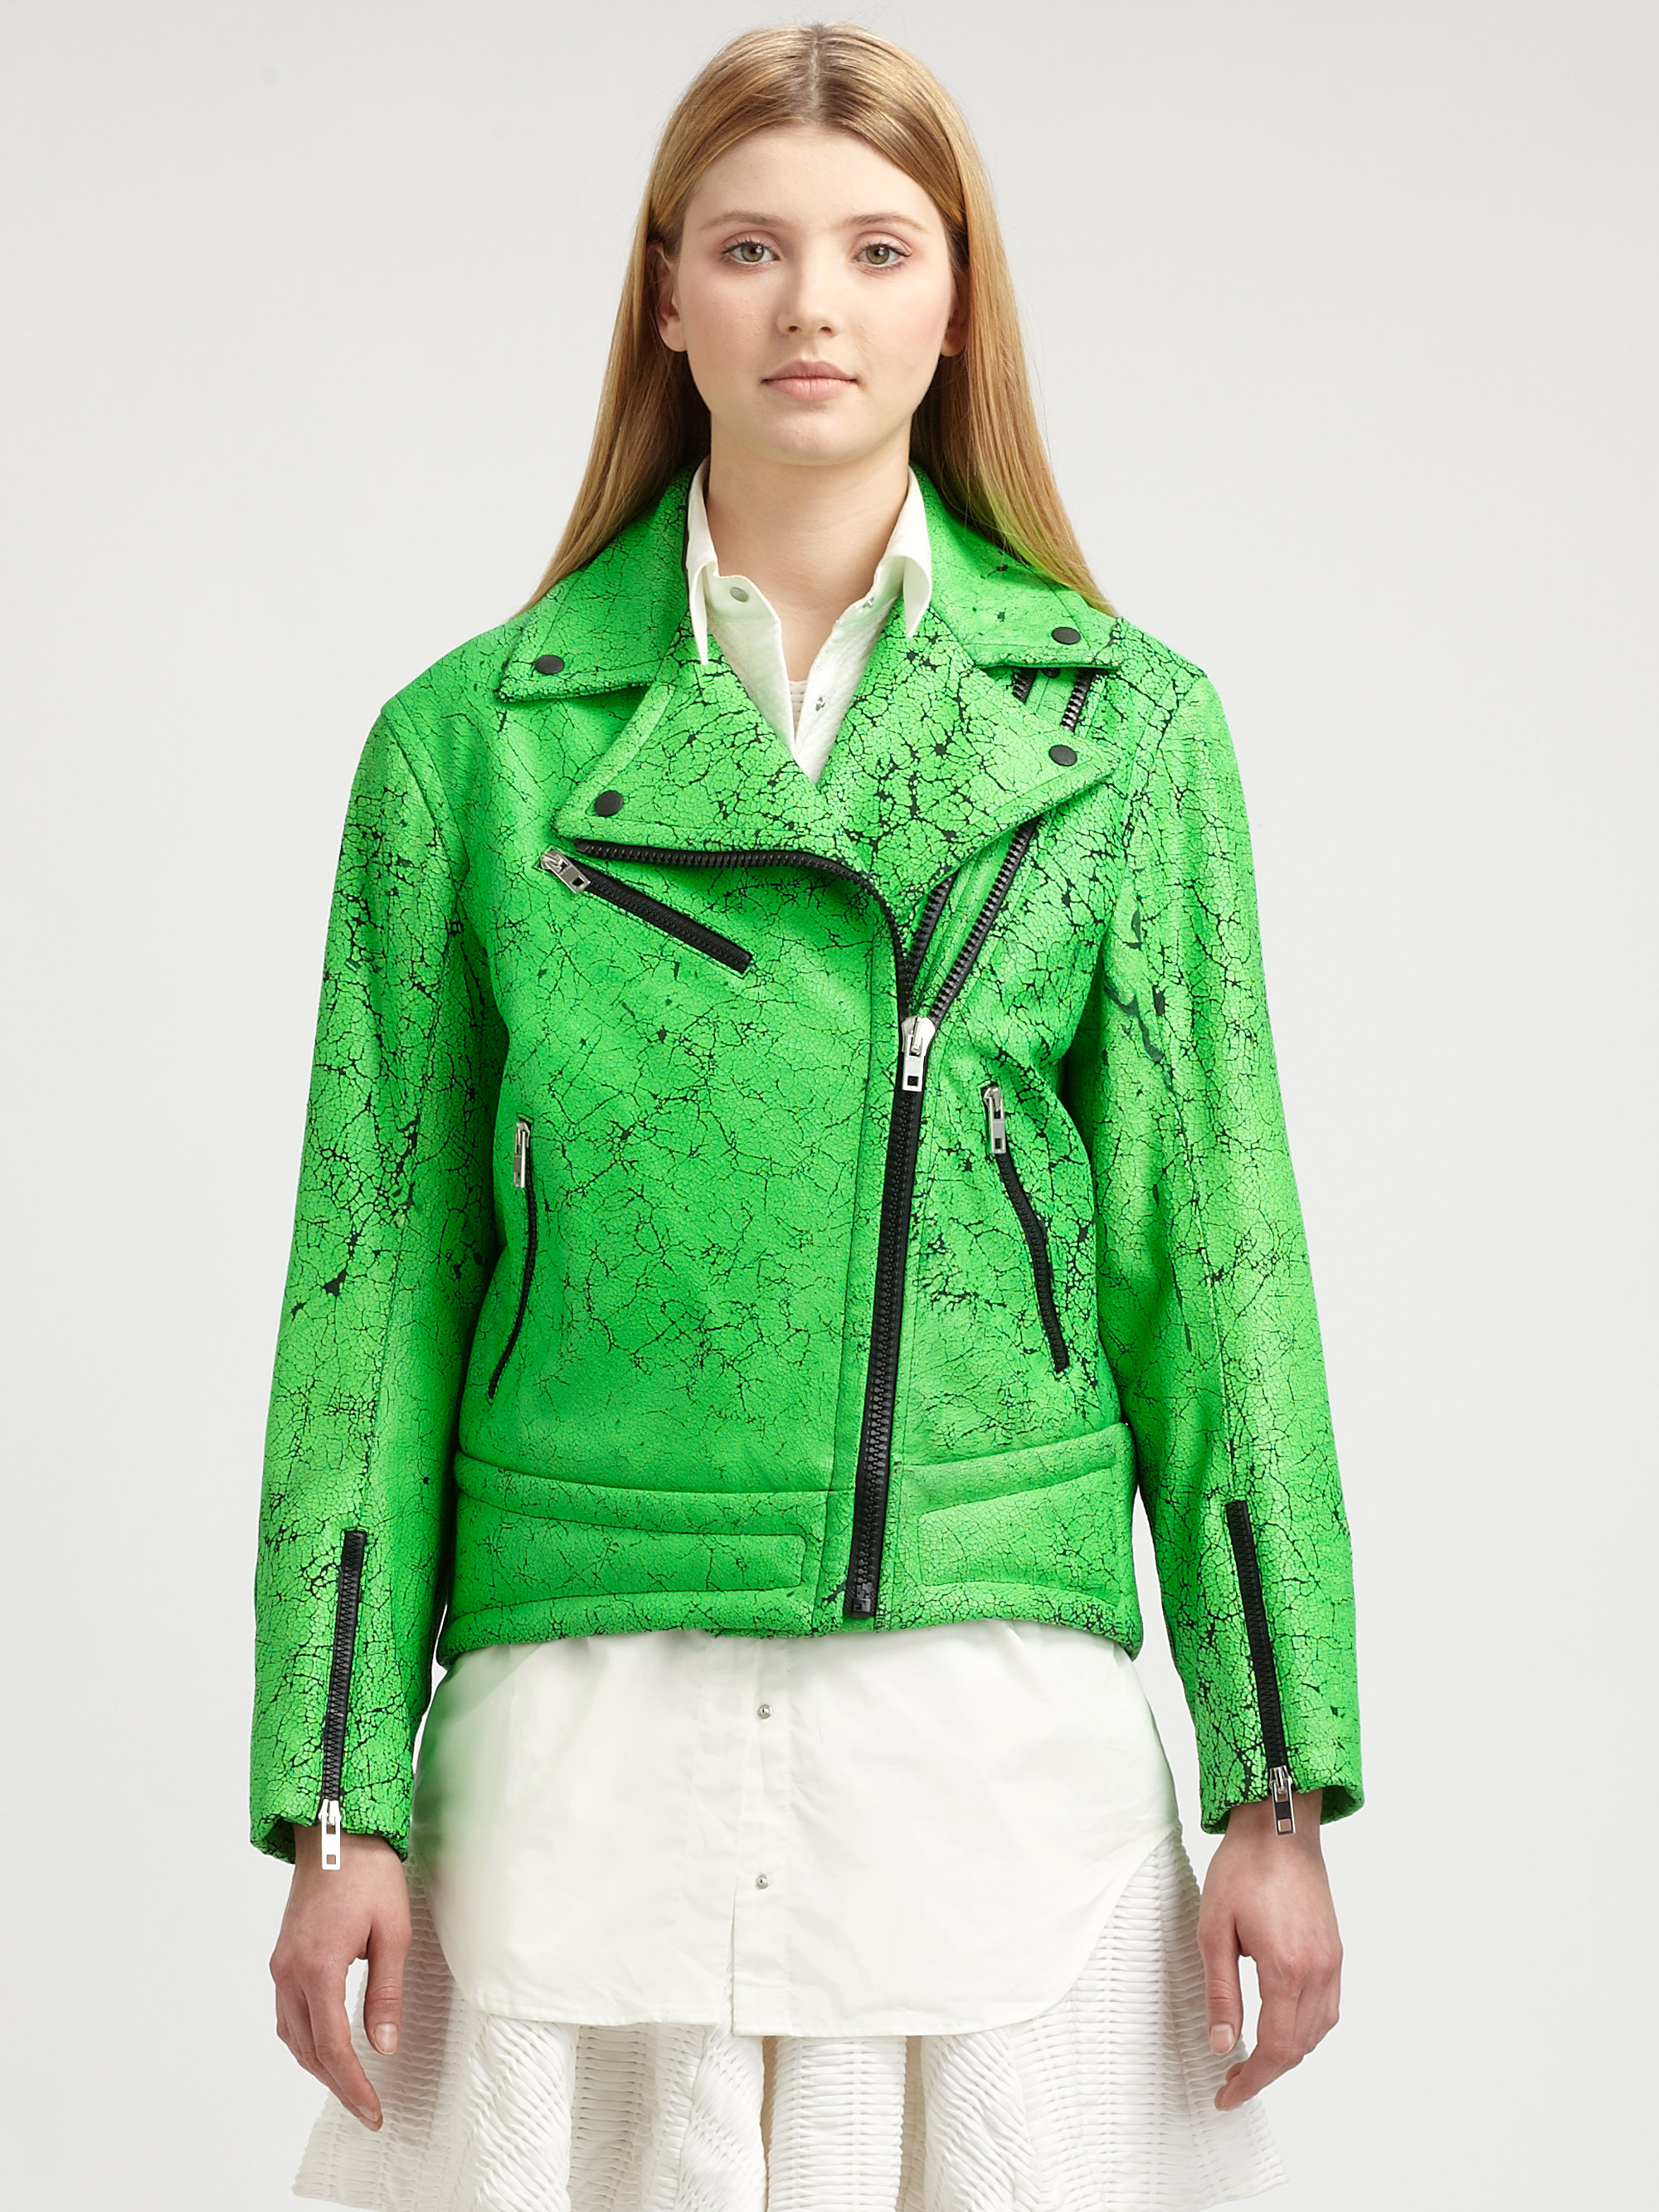 Rag & bone Monaco Leather Moto Jacket in Green | Lyst